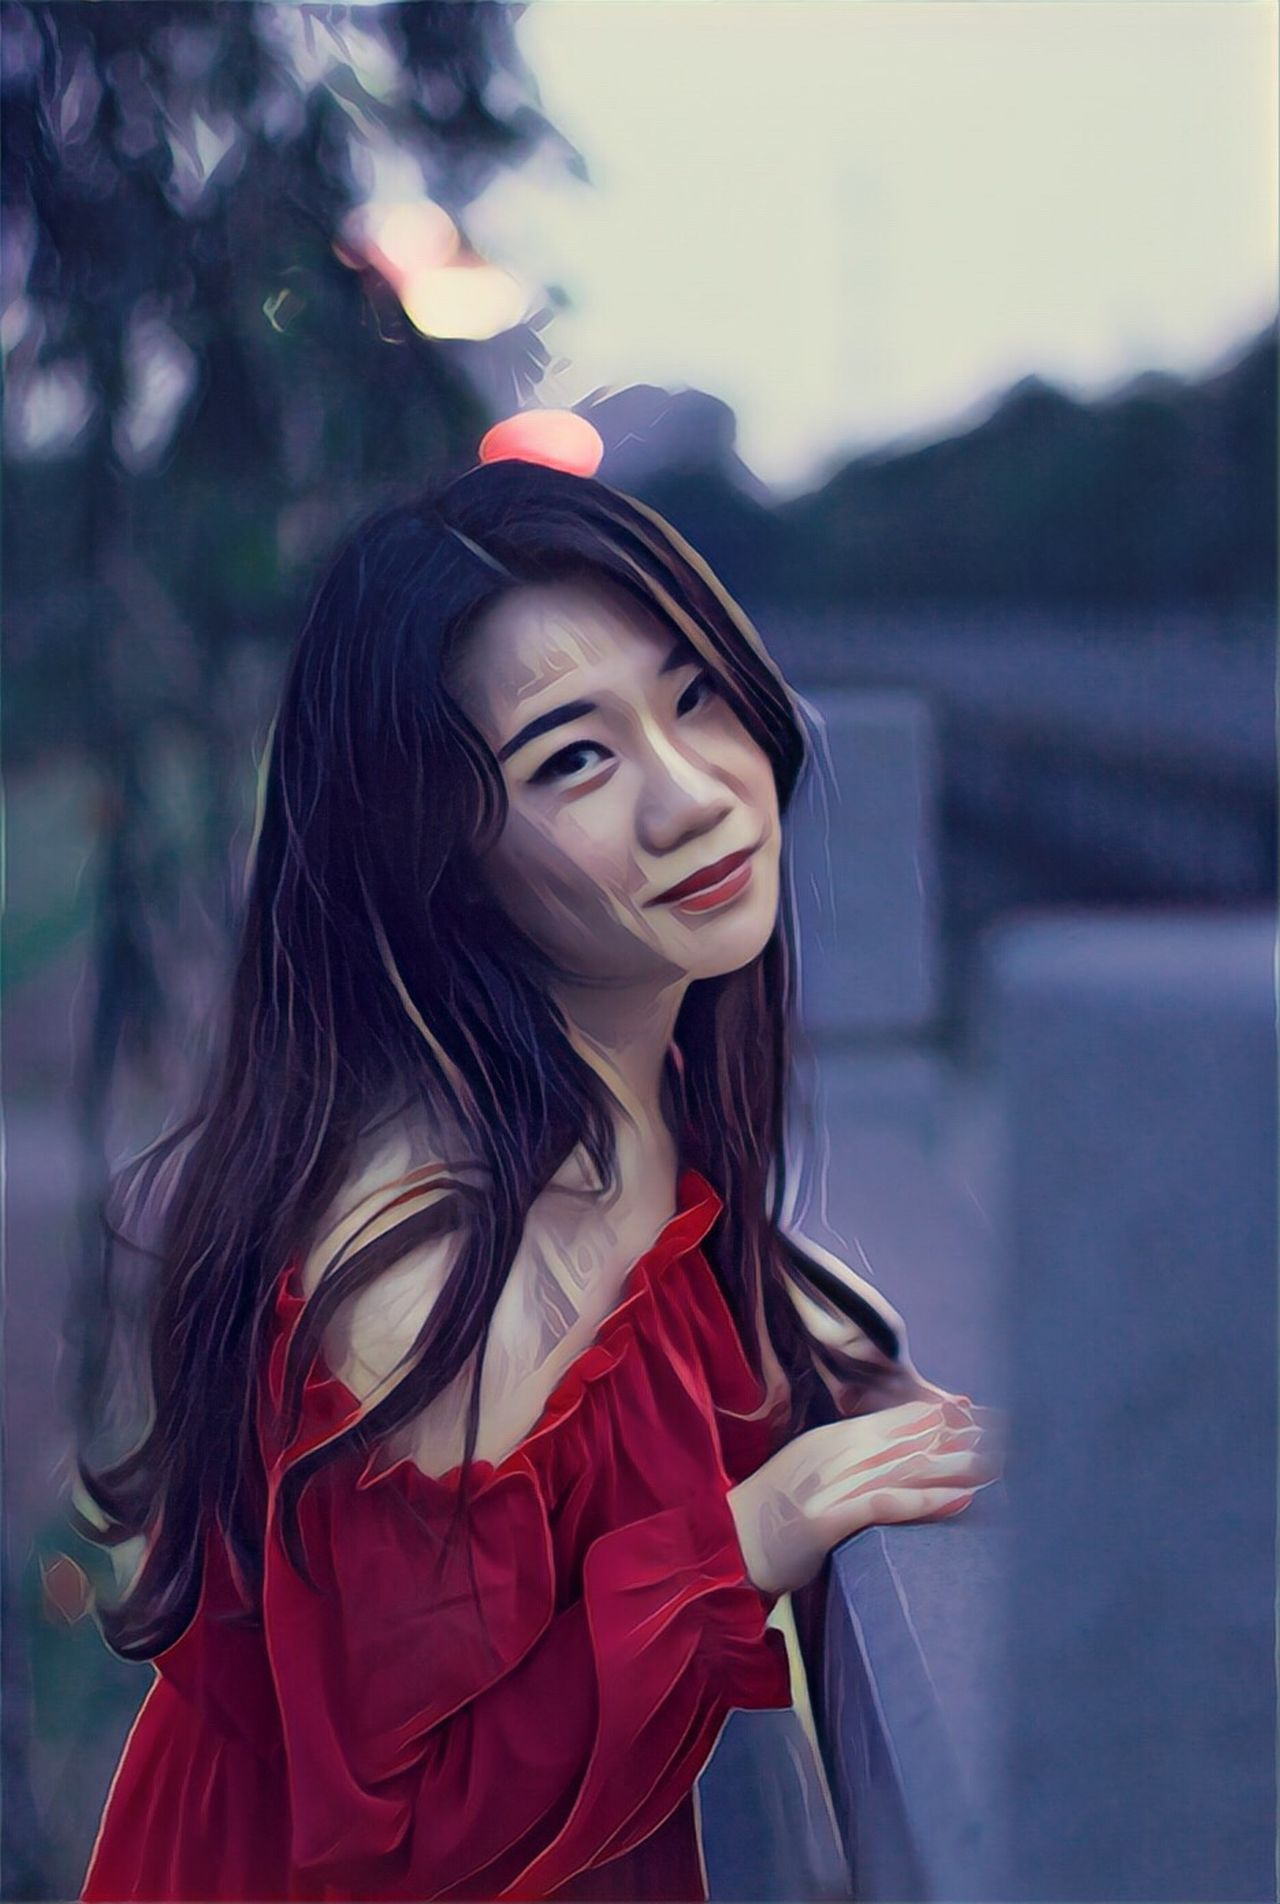 Myself Long Hair One Person Young Women Only Women Young Adult Myself Outdoors Red Red Dress